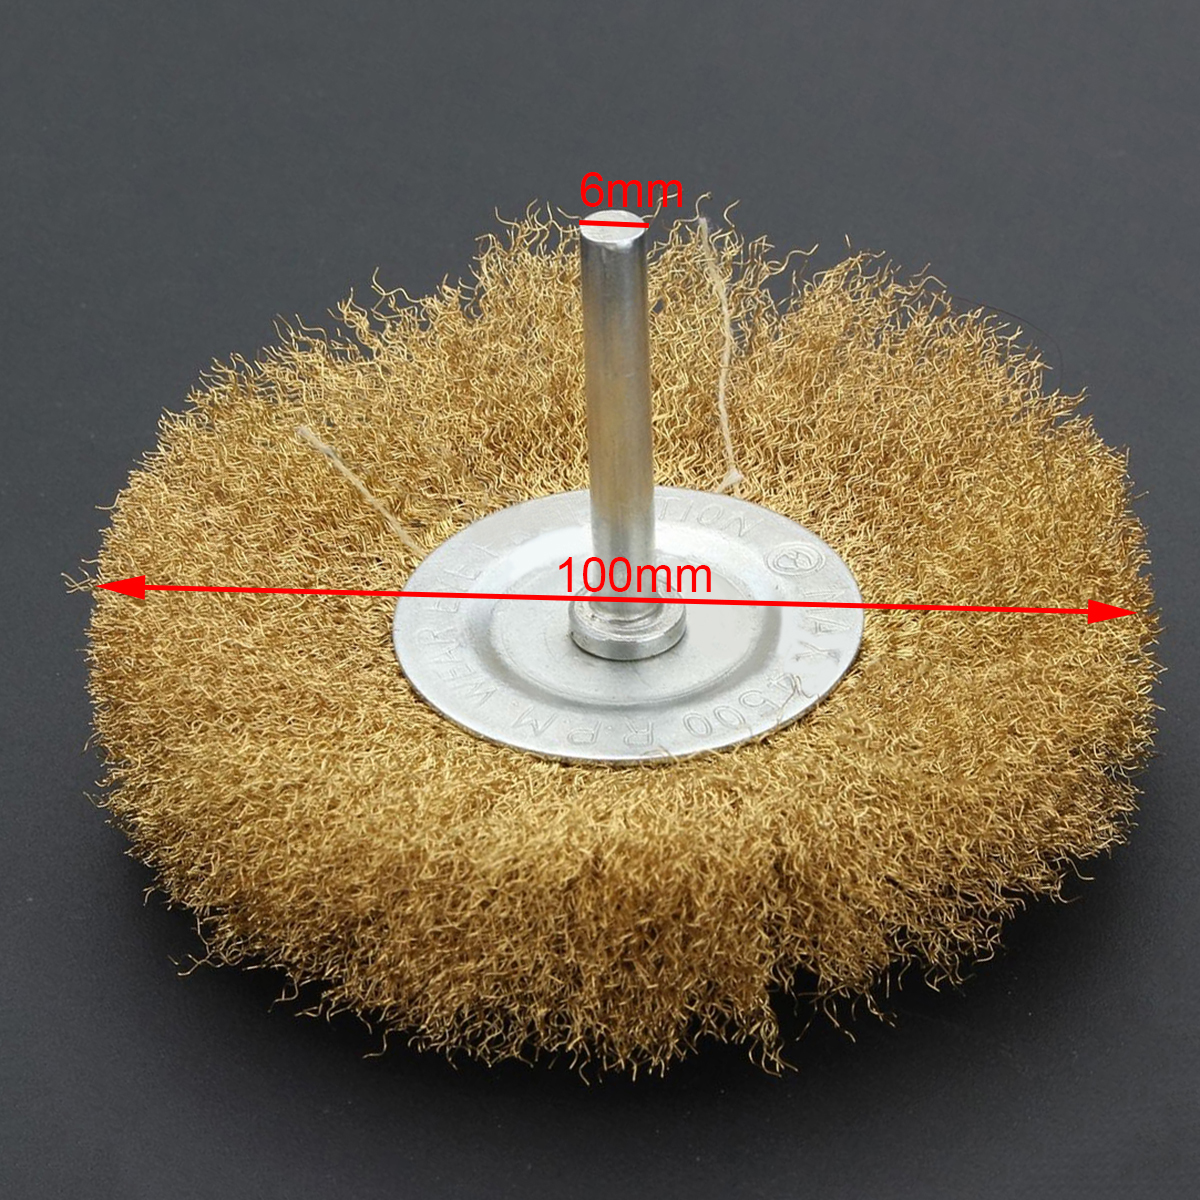 10x rotary mini tools steel wire wheel brushes cup rust cleaning - 1pc Durable 1 4 Shank Brass Plated Rotary Wire Wheel Mayitr For Remove Clean Rust Paint Scale Dirt Power Drill Brush 4500 Rpm